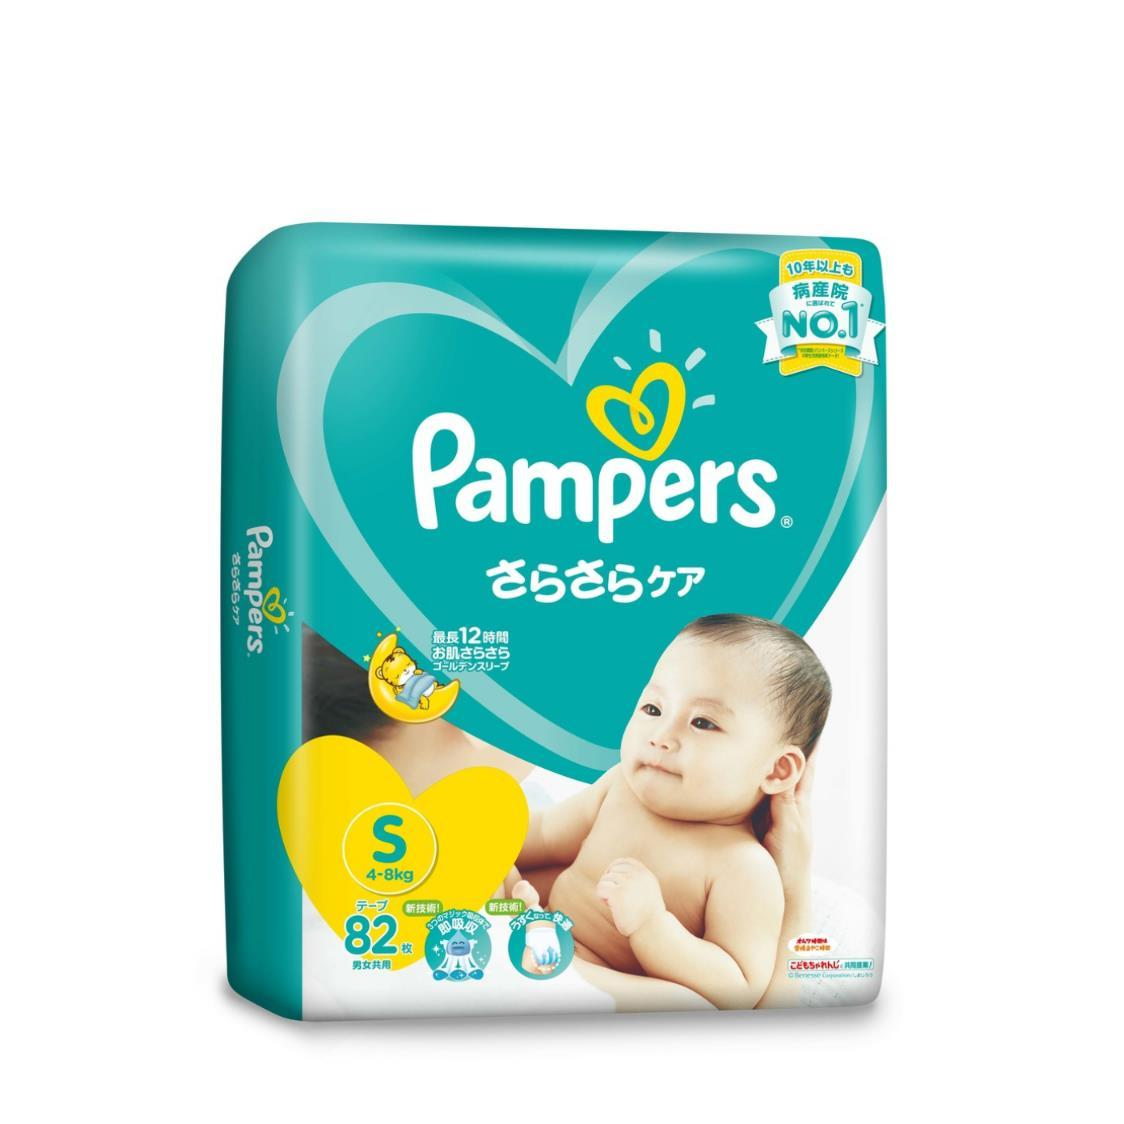 Pampers Baby Dry Diapers S 82s 4-8kg